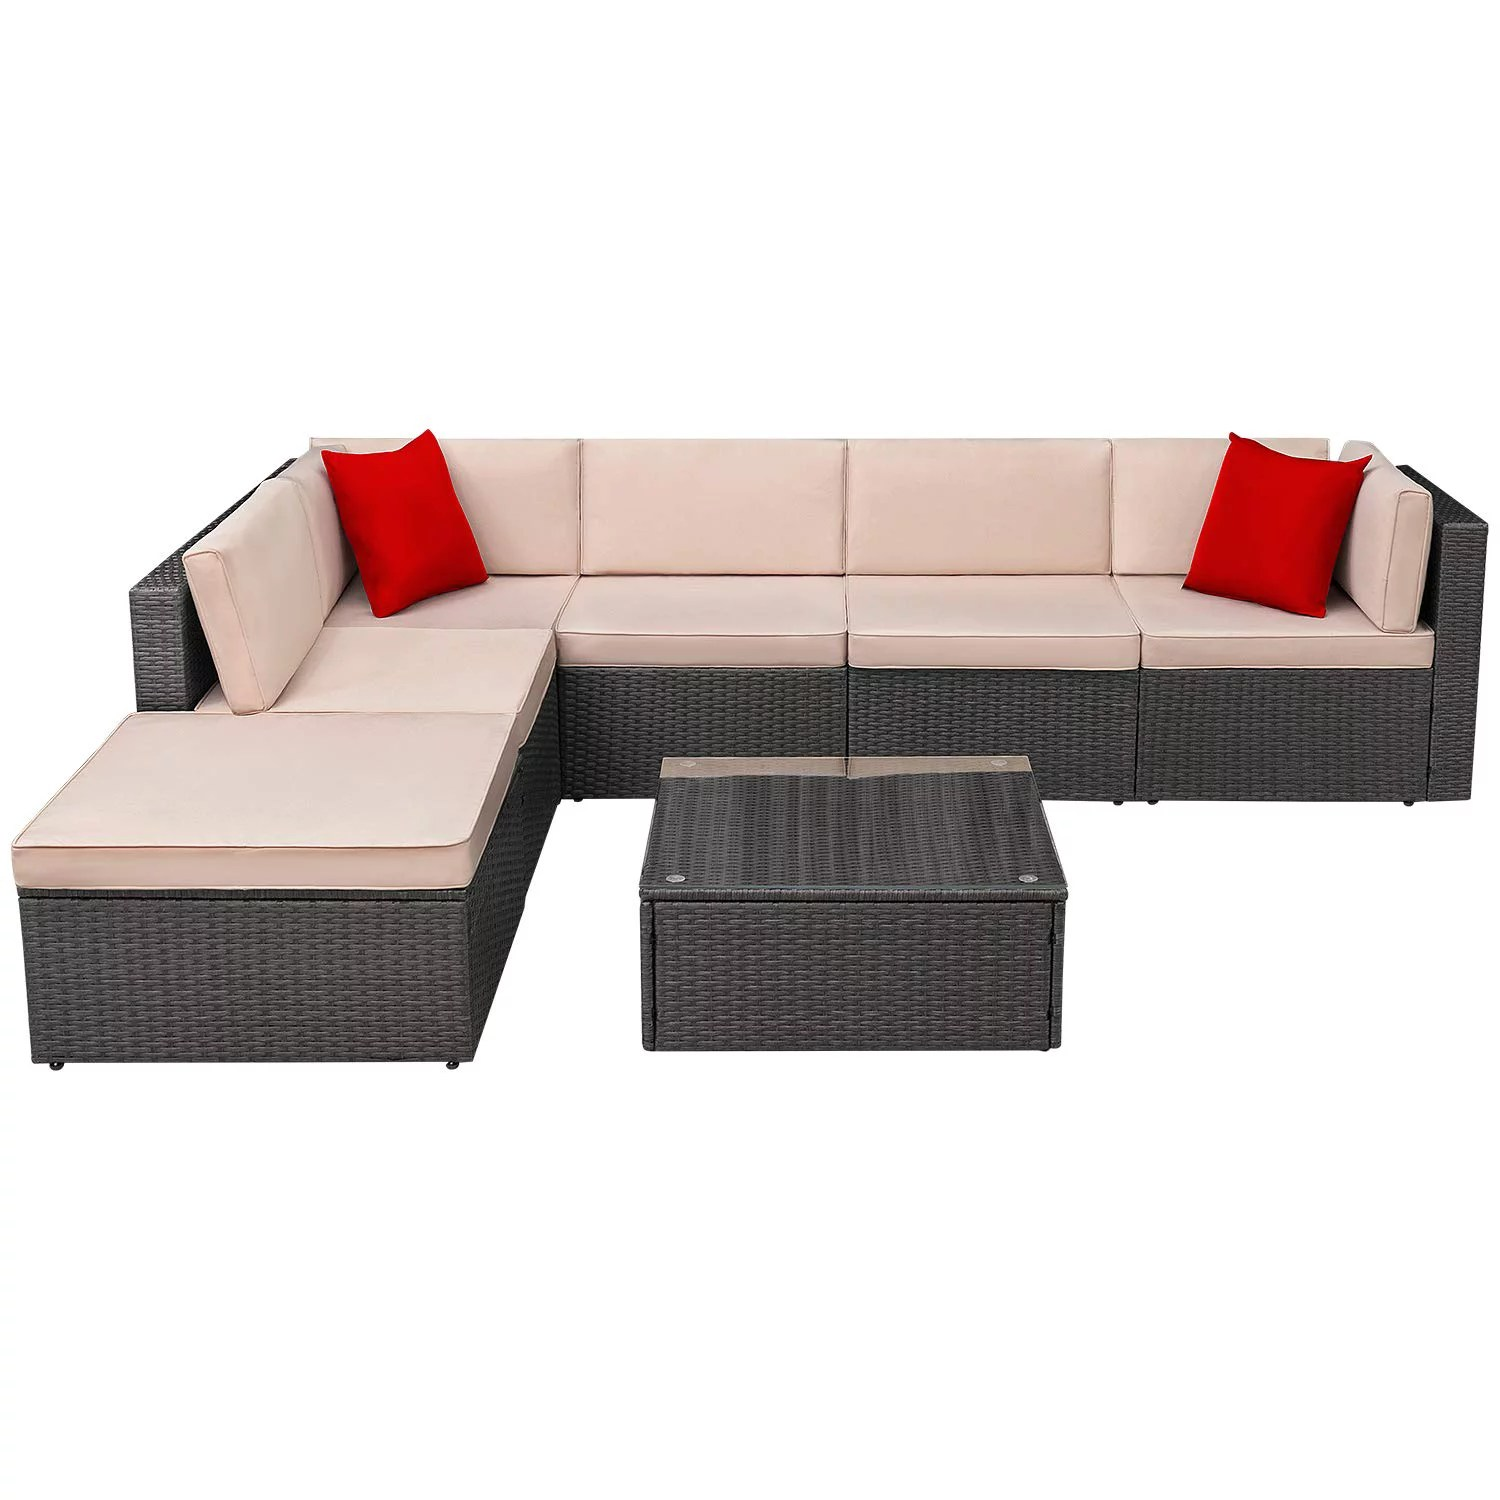 walnew 7 pieces outdoor patio furniture sofa set all weather pe rattan wicker sectional sets modern modular couch outside conversation set with thick